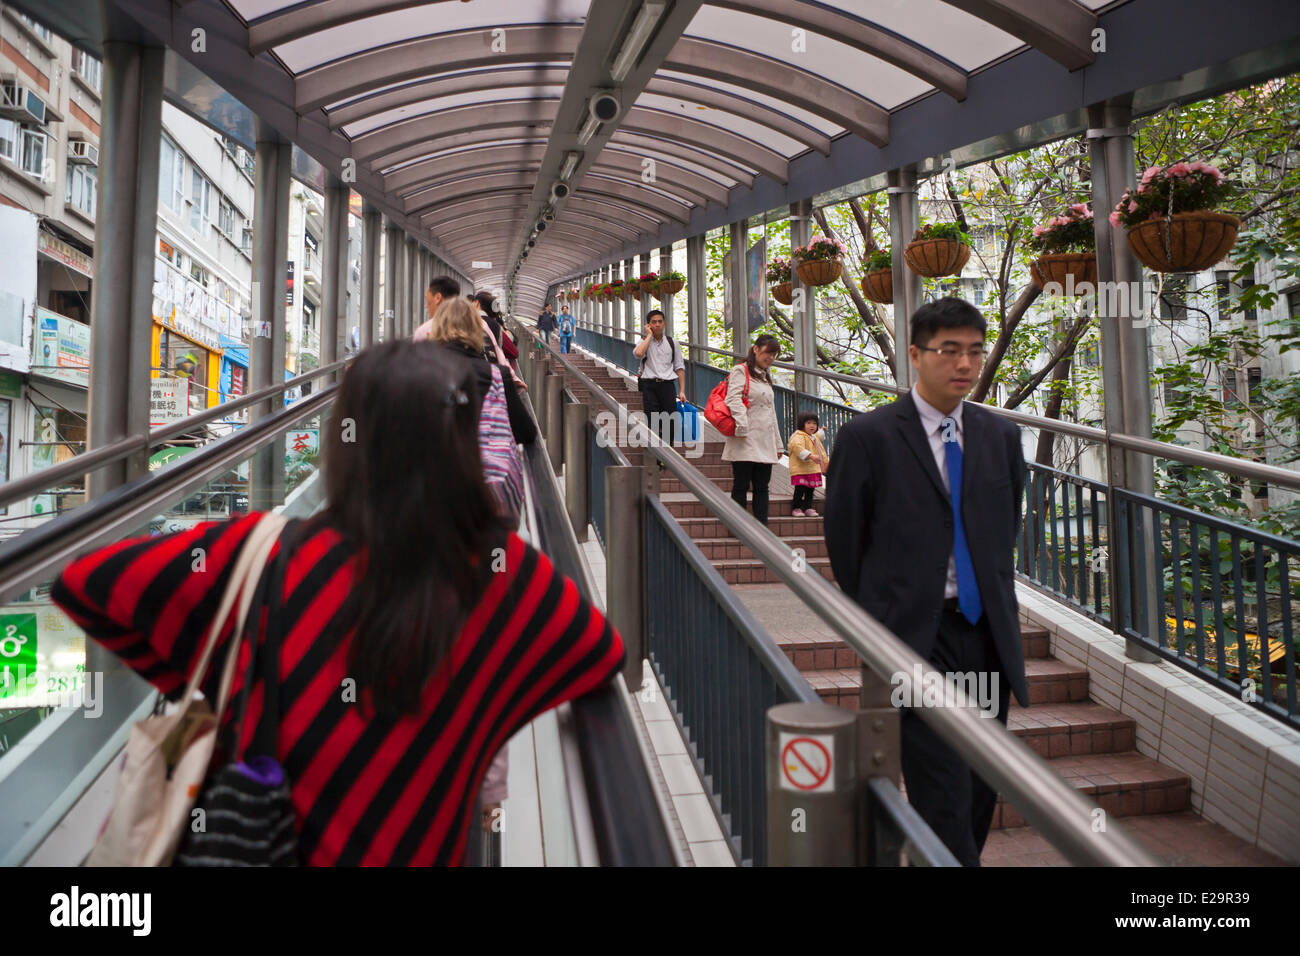 China, Honk-Kong island, escalators leading to in Soho district - Stock Image